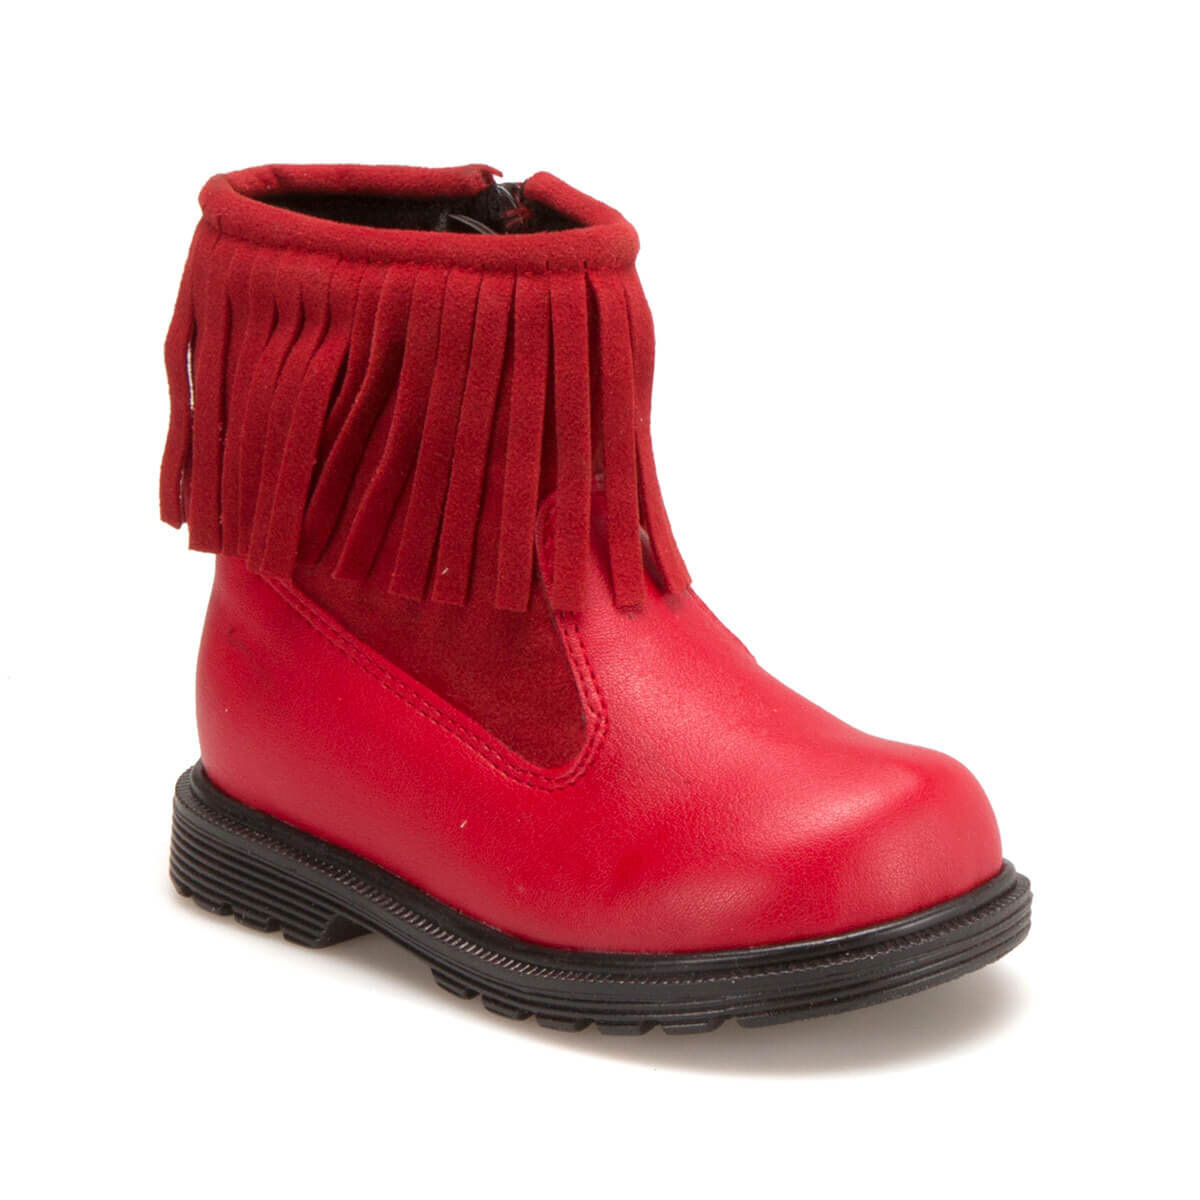 FLO 62.508412.B Red Female Child Boots Polaris